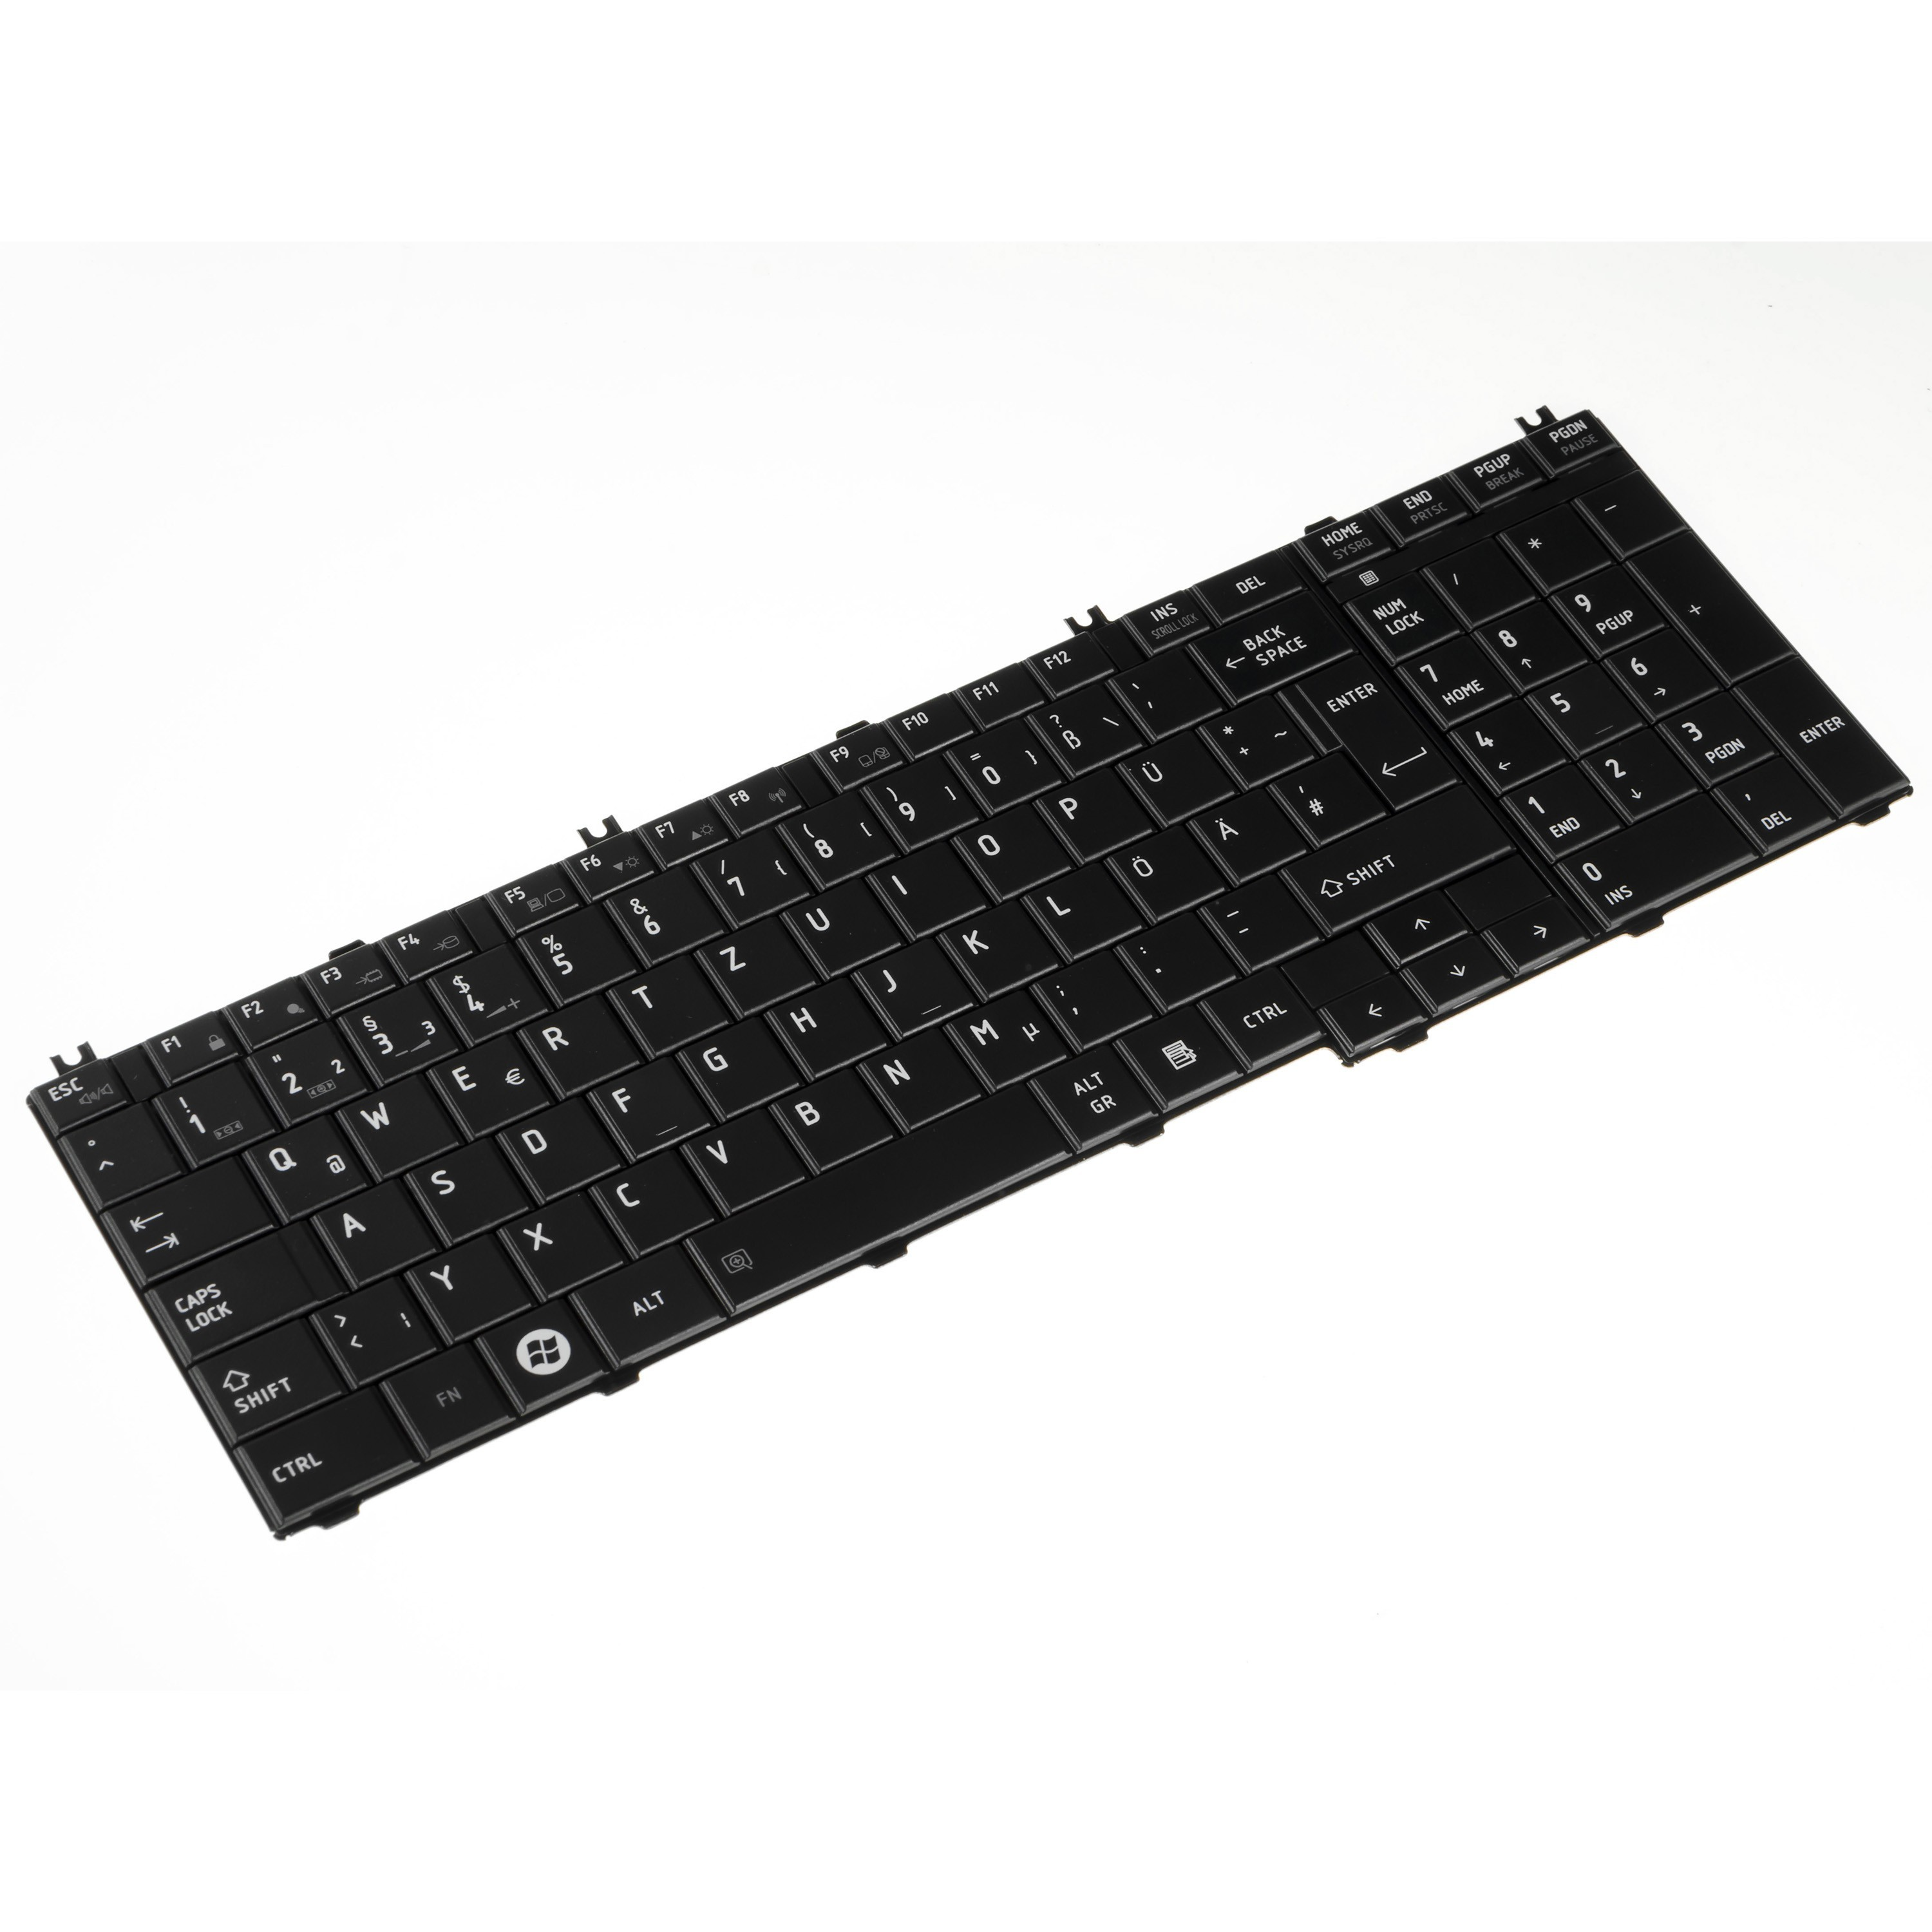 Green Cell Keyboard for Laptop Toshiba Satellite C650 C655 C660 L650 L670 L750